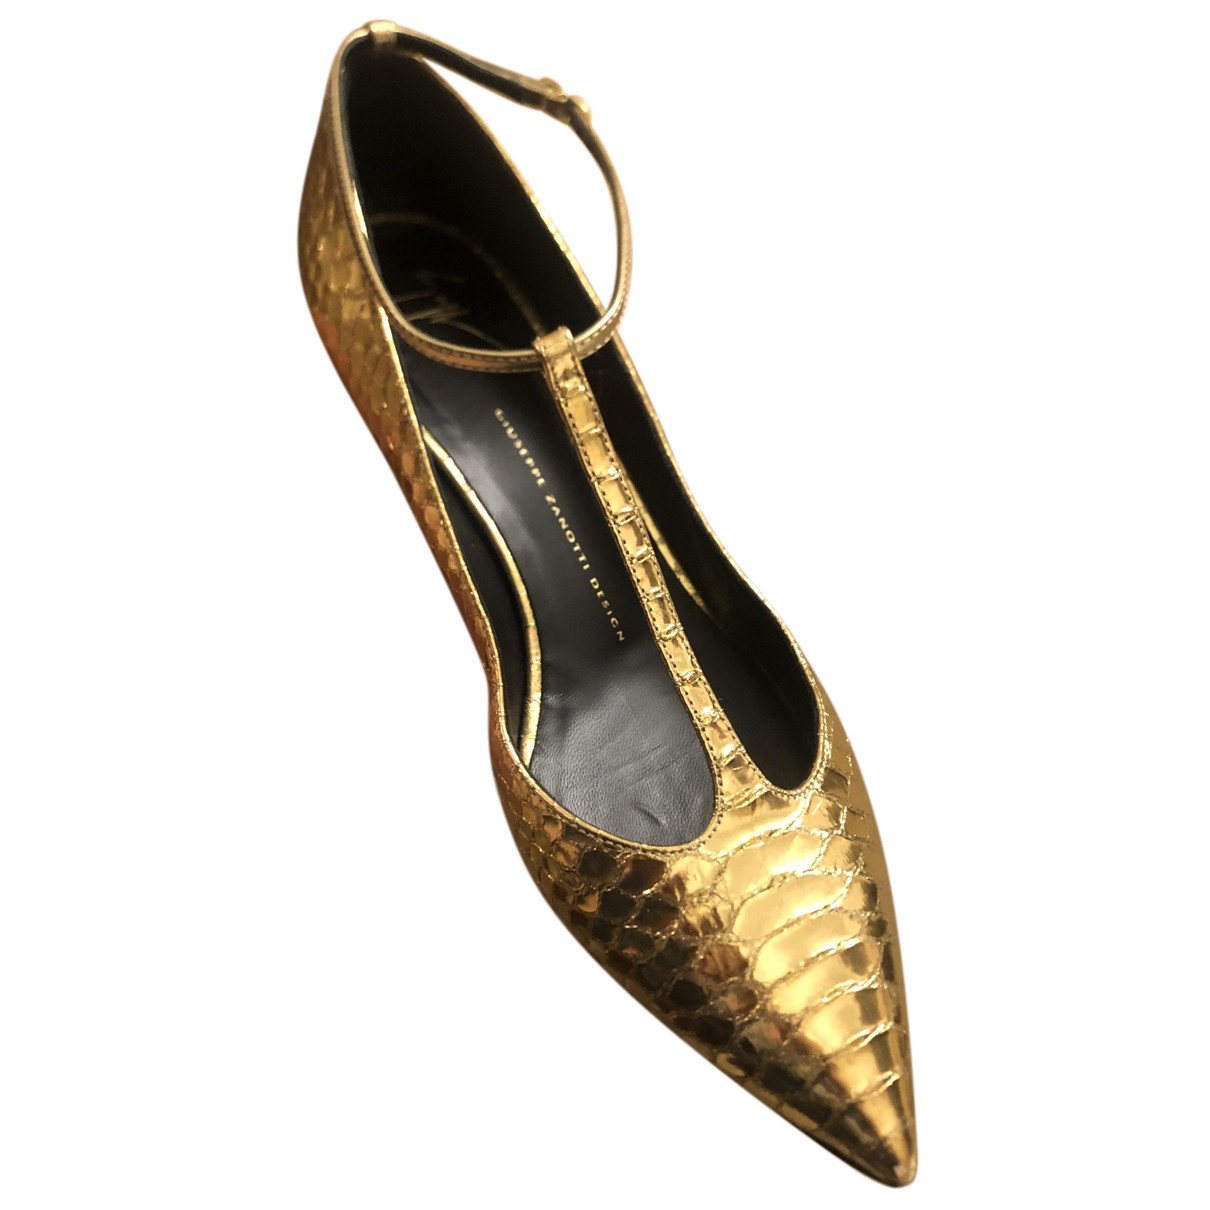 Giuseppe Zanotti N Gold Leather Heels for Women 41 EU